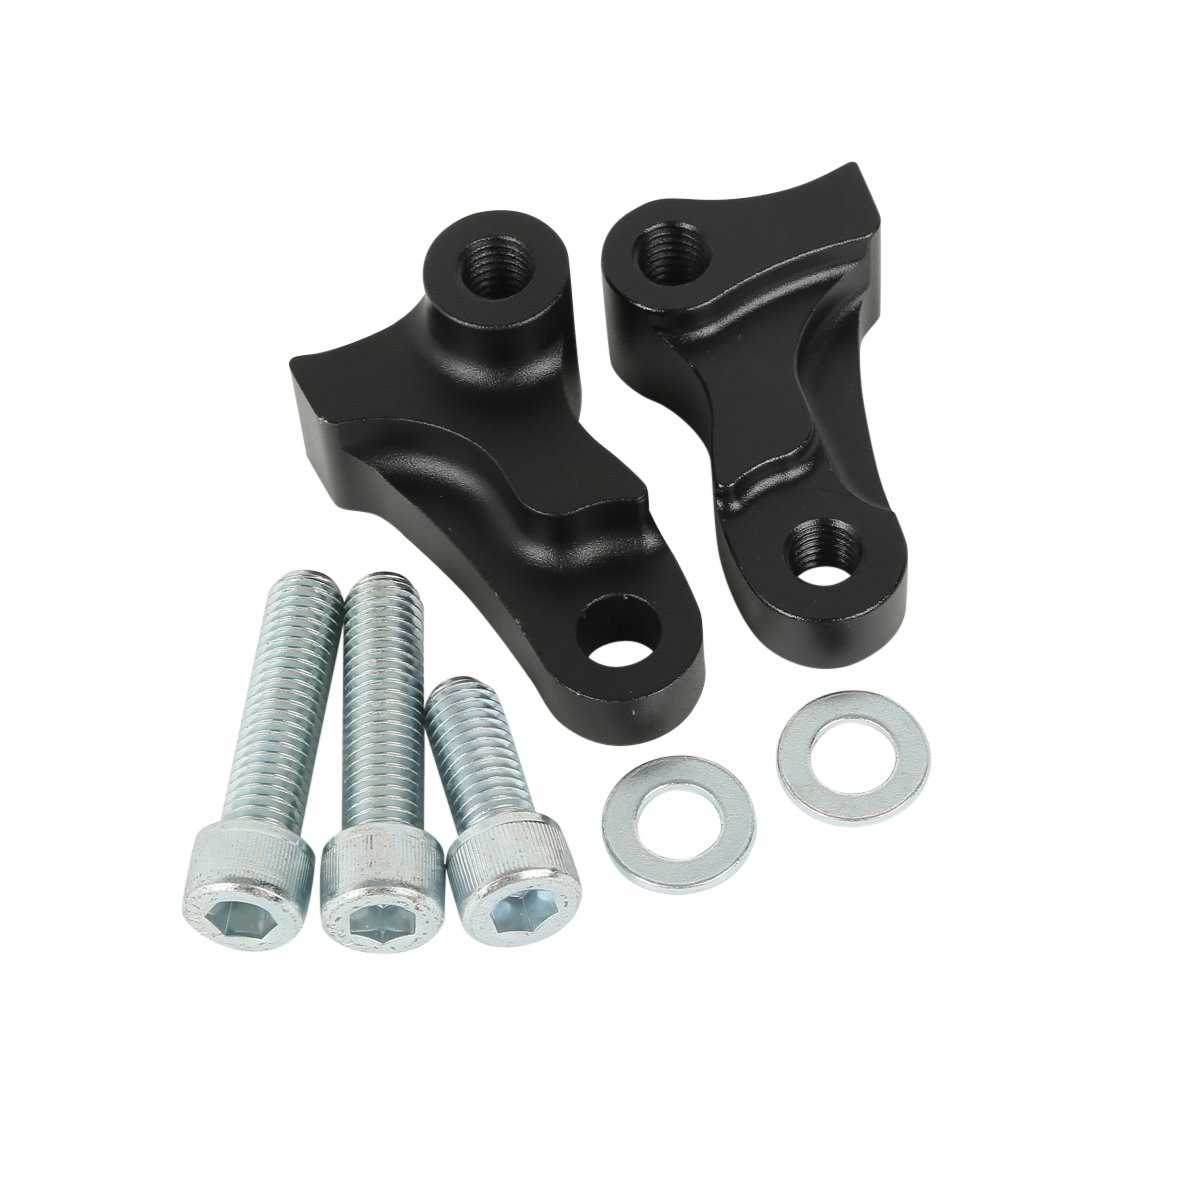 XMT-MOTO 1.75 1-3//4 Rear Drop Lowering Kit fits for Harley Davidson Dyna Models 2006 2007 2008 2009 2010 2011 2012 2013 2014 2015 2016 2017